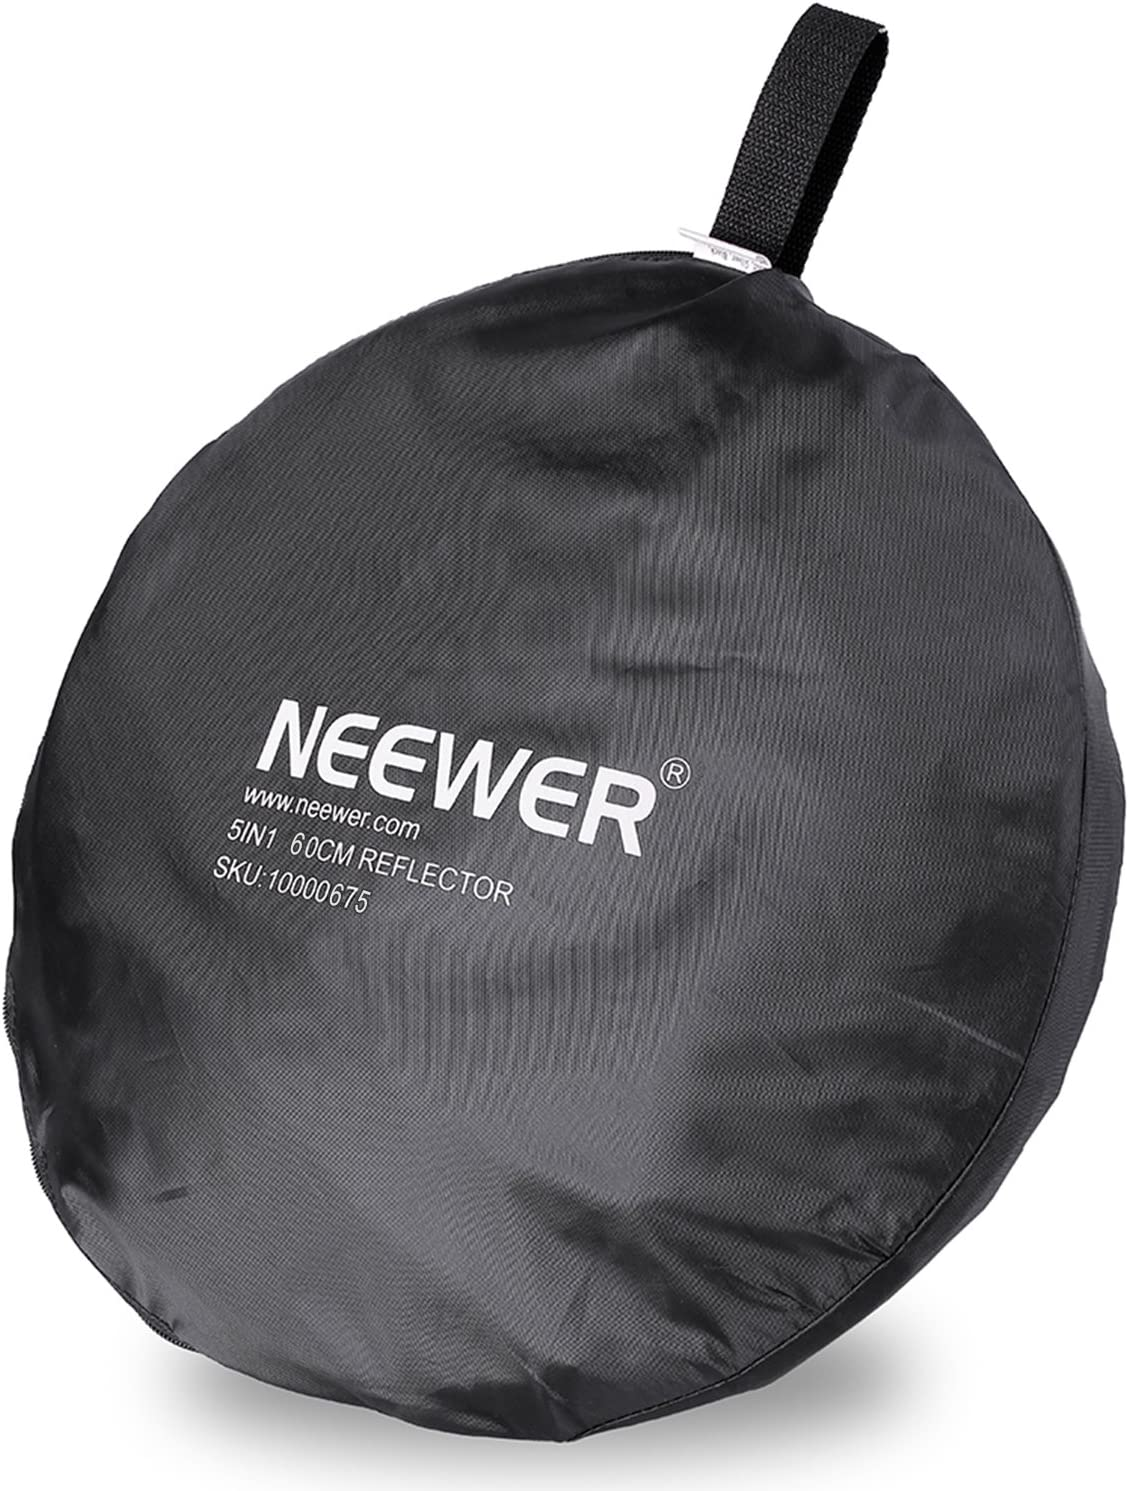 and Black Collapsible Round Multi Disc Light Reflector for Studio or any Photography Situation Silver White Gold Neewer Portable 5 in 1 60x60cm//22x22 Translucent